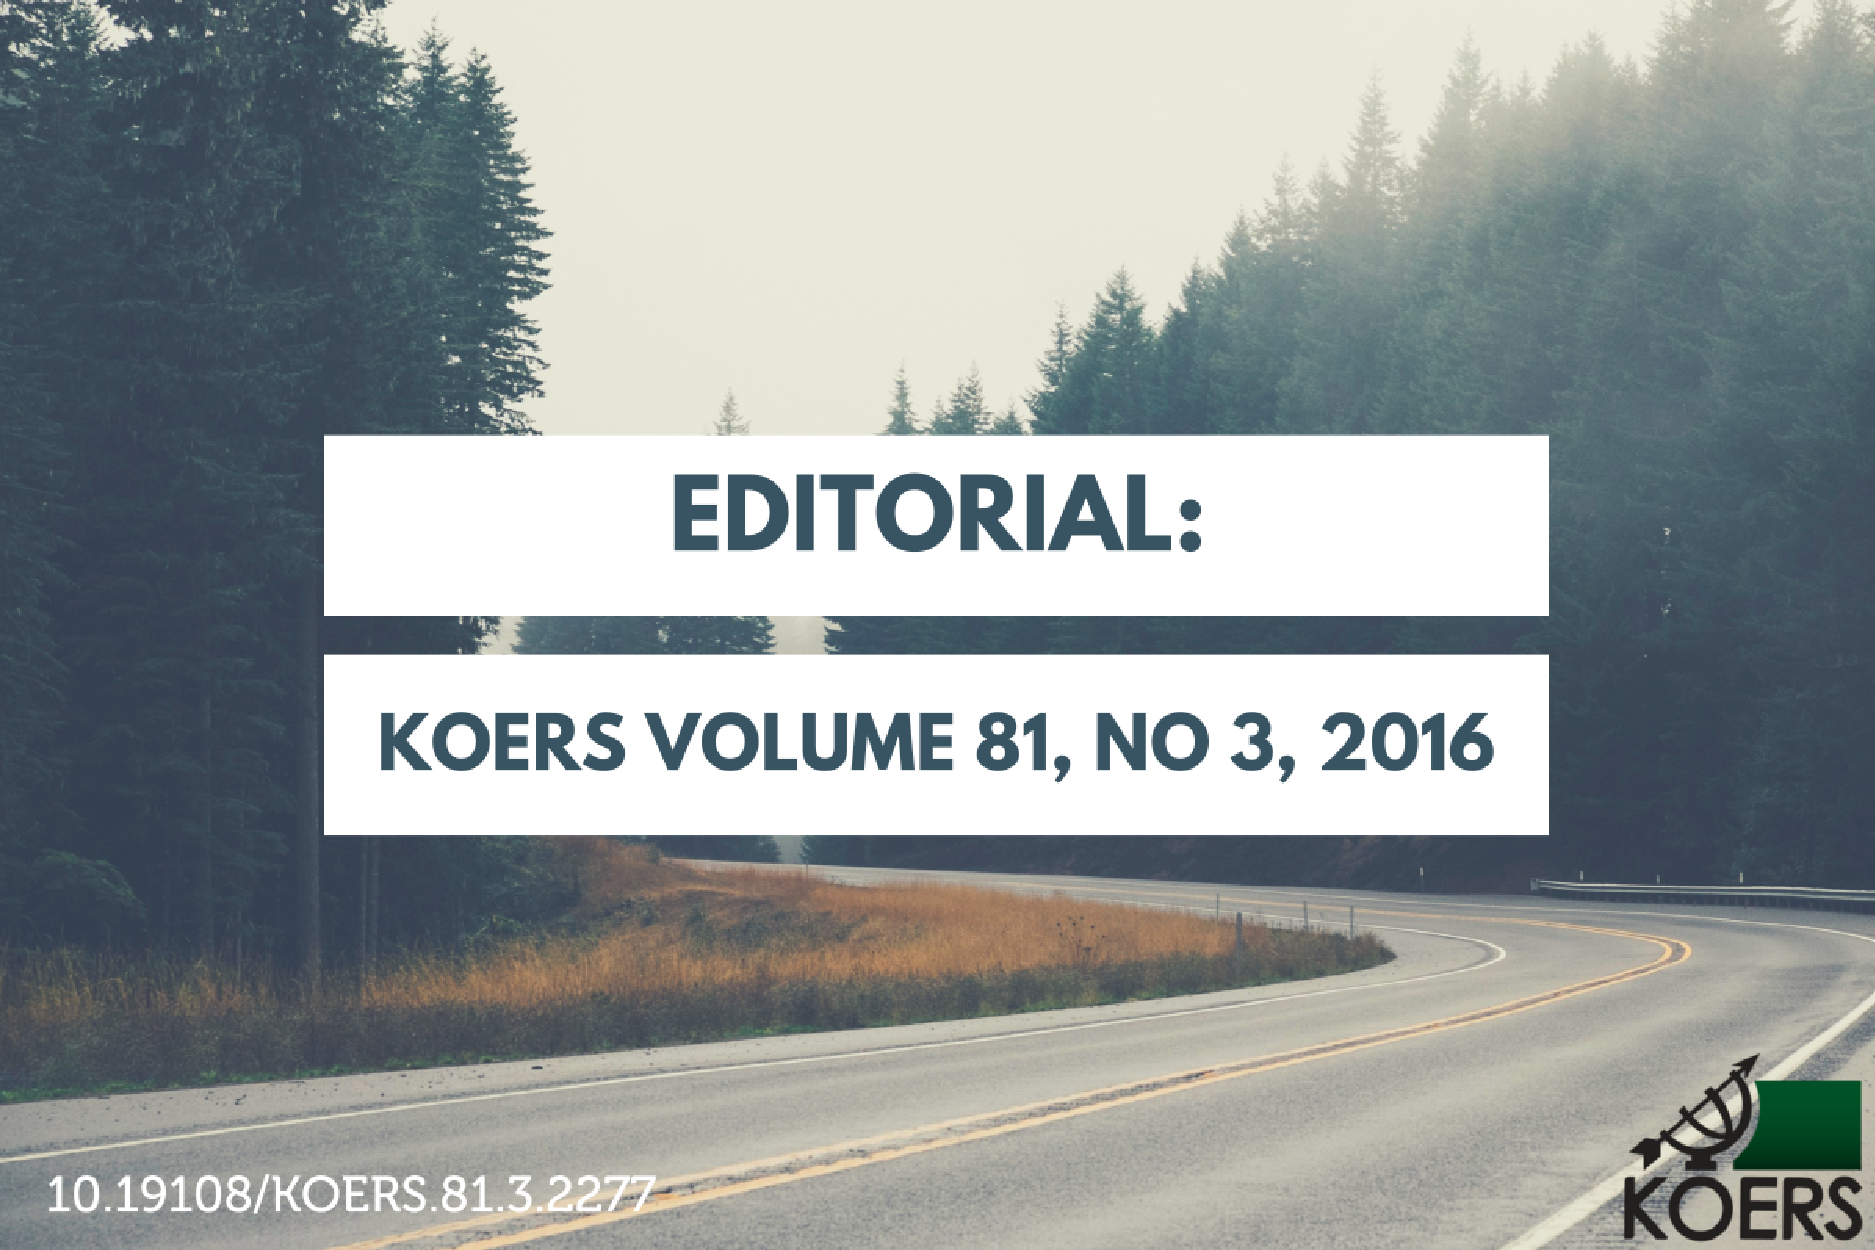 Editorial: KOERS Volume 81, No 3, 2016